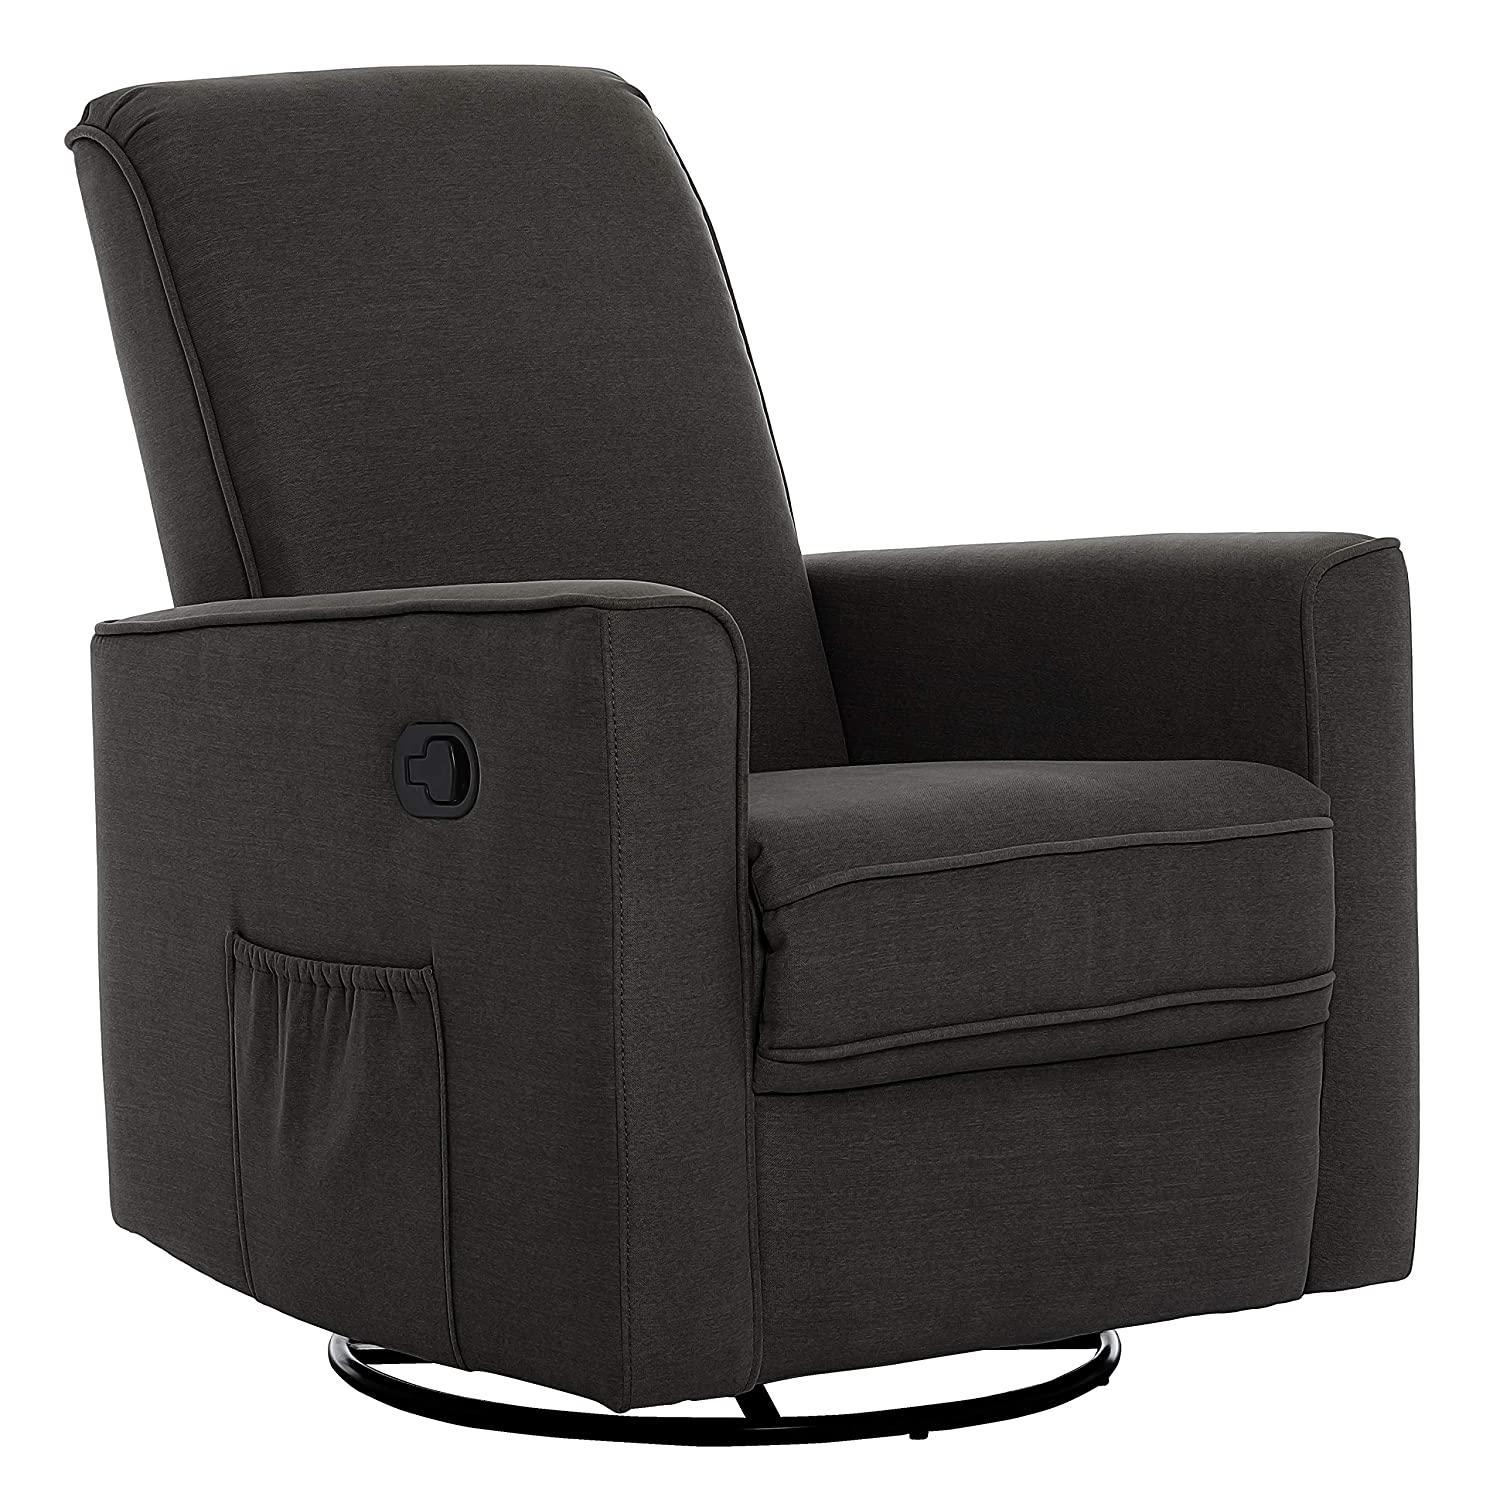 Evolur Raleigh Basic Glider, Recliner and Rocker in Charcoal